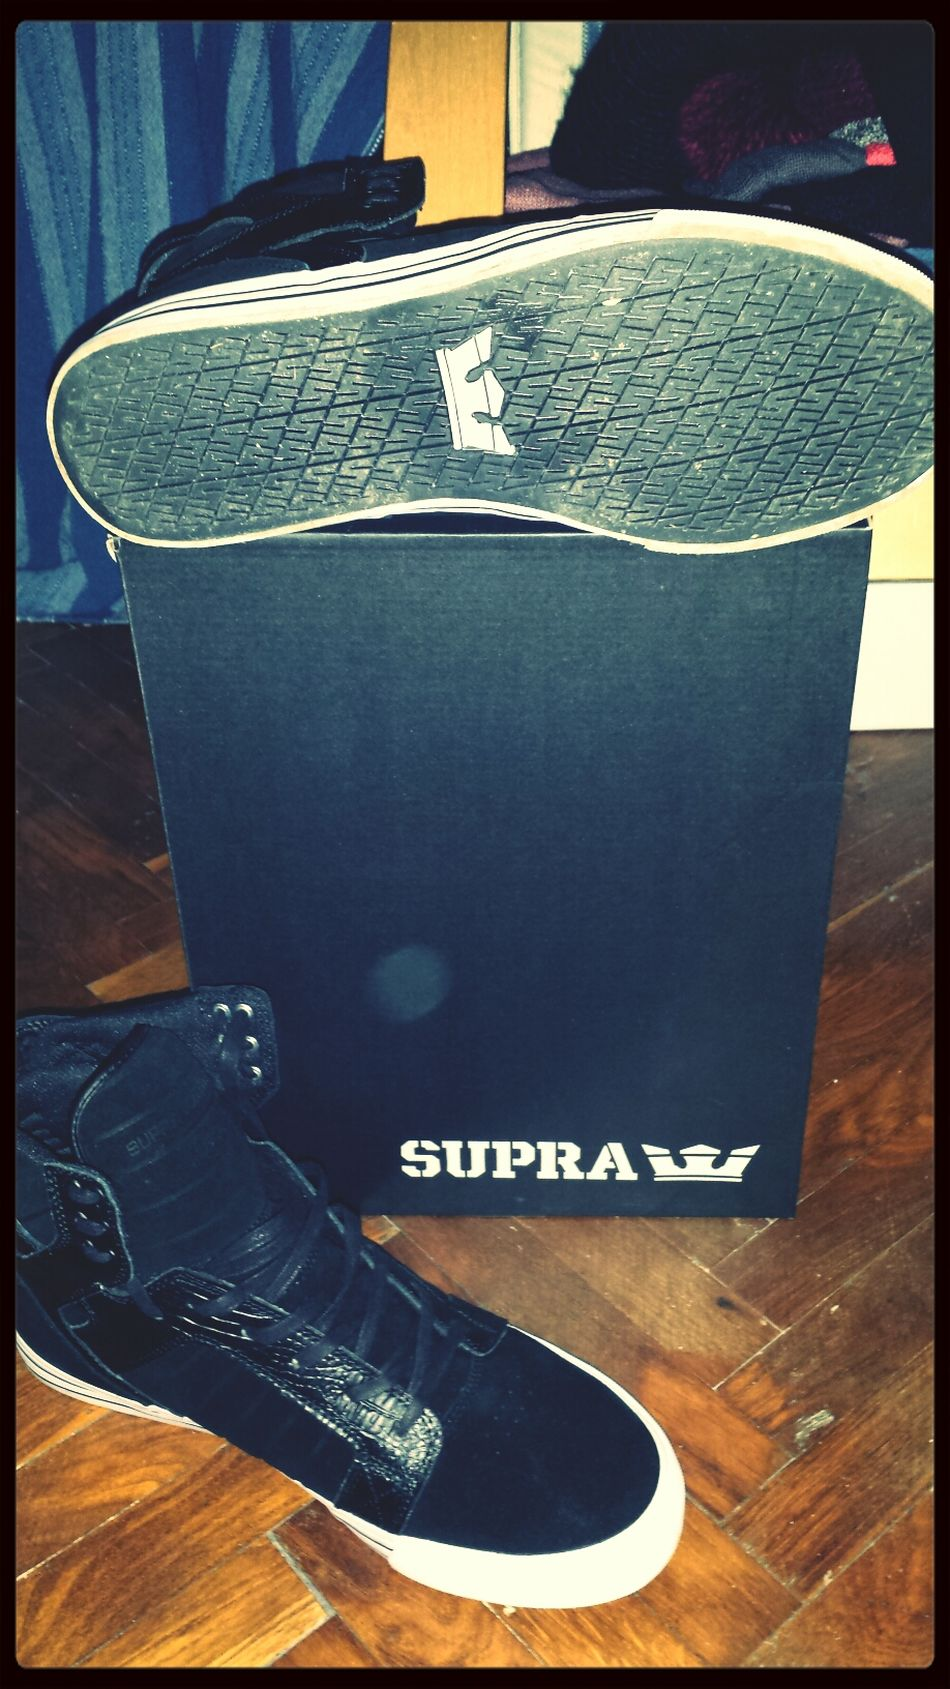 There is always something special about Supra ♡. Supra Shoes  Fashion Blac&white